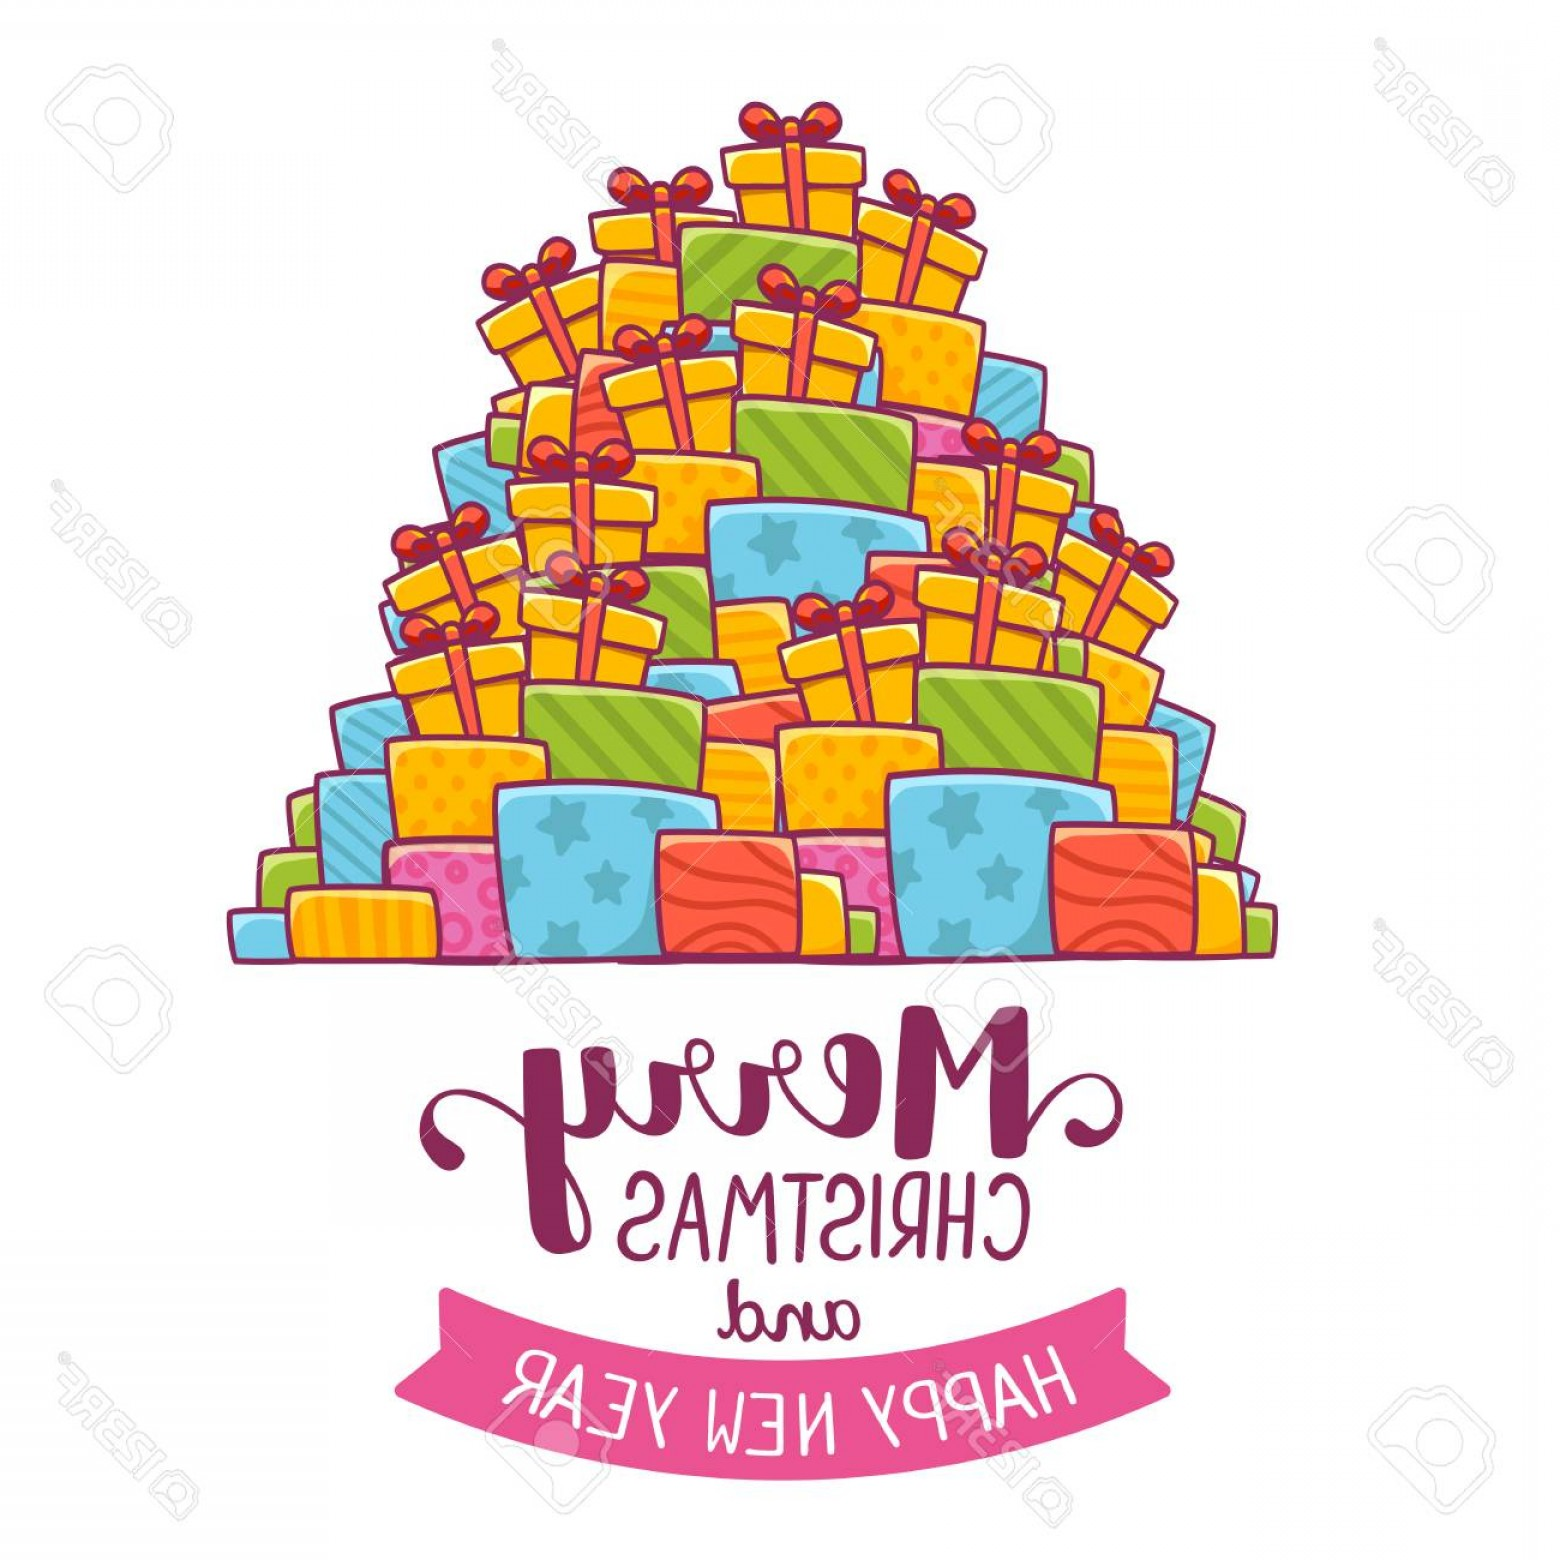 Vector Art Free Christmas Gift: Photostock Vector Vector Illustration Of Colorful High Pile Of Christmas Gifts And Handwritten Text Merry Christmas On